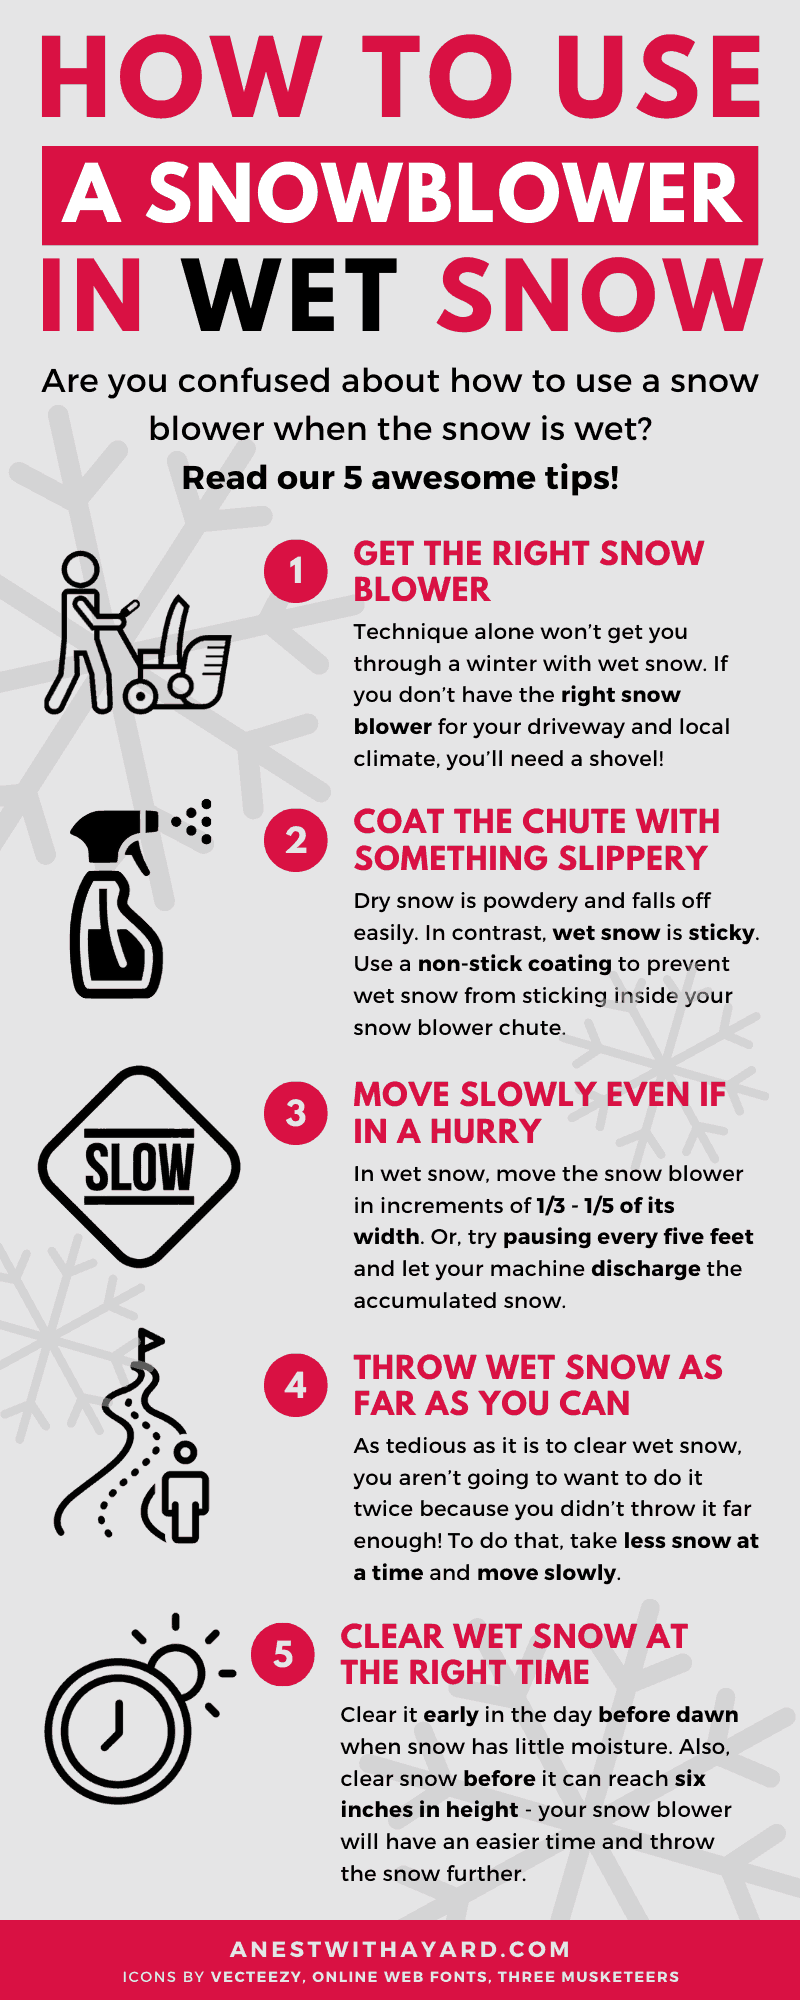 A Snowblower In Wet Snow Infographic